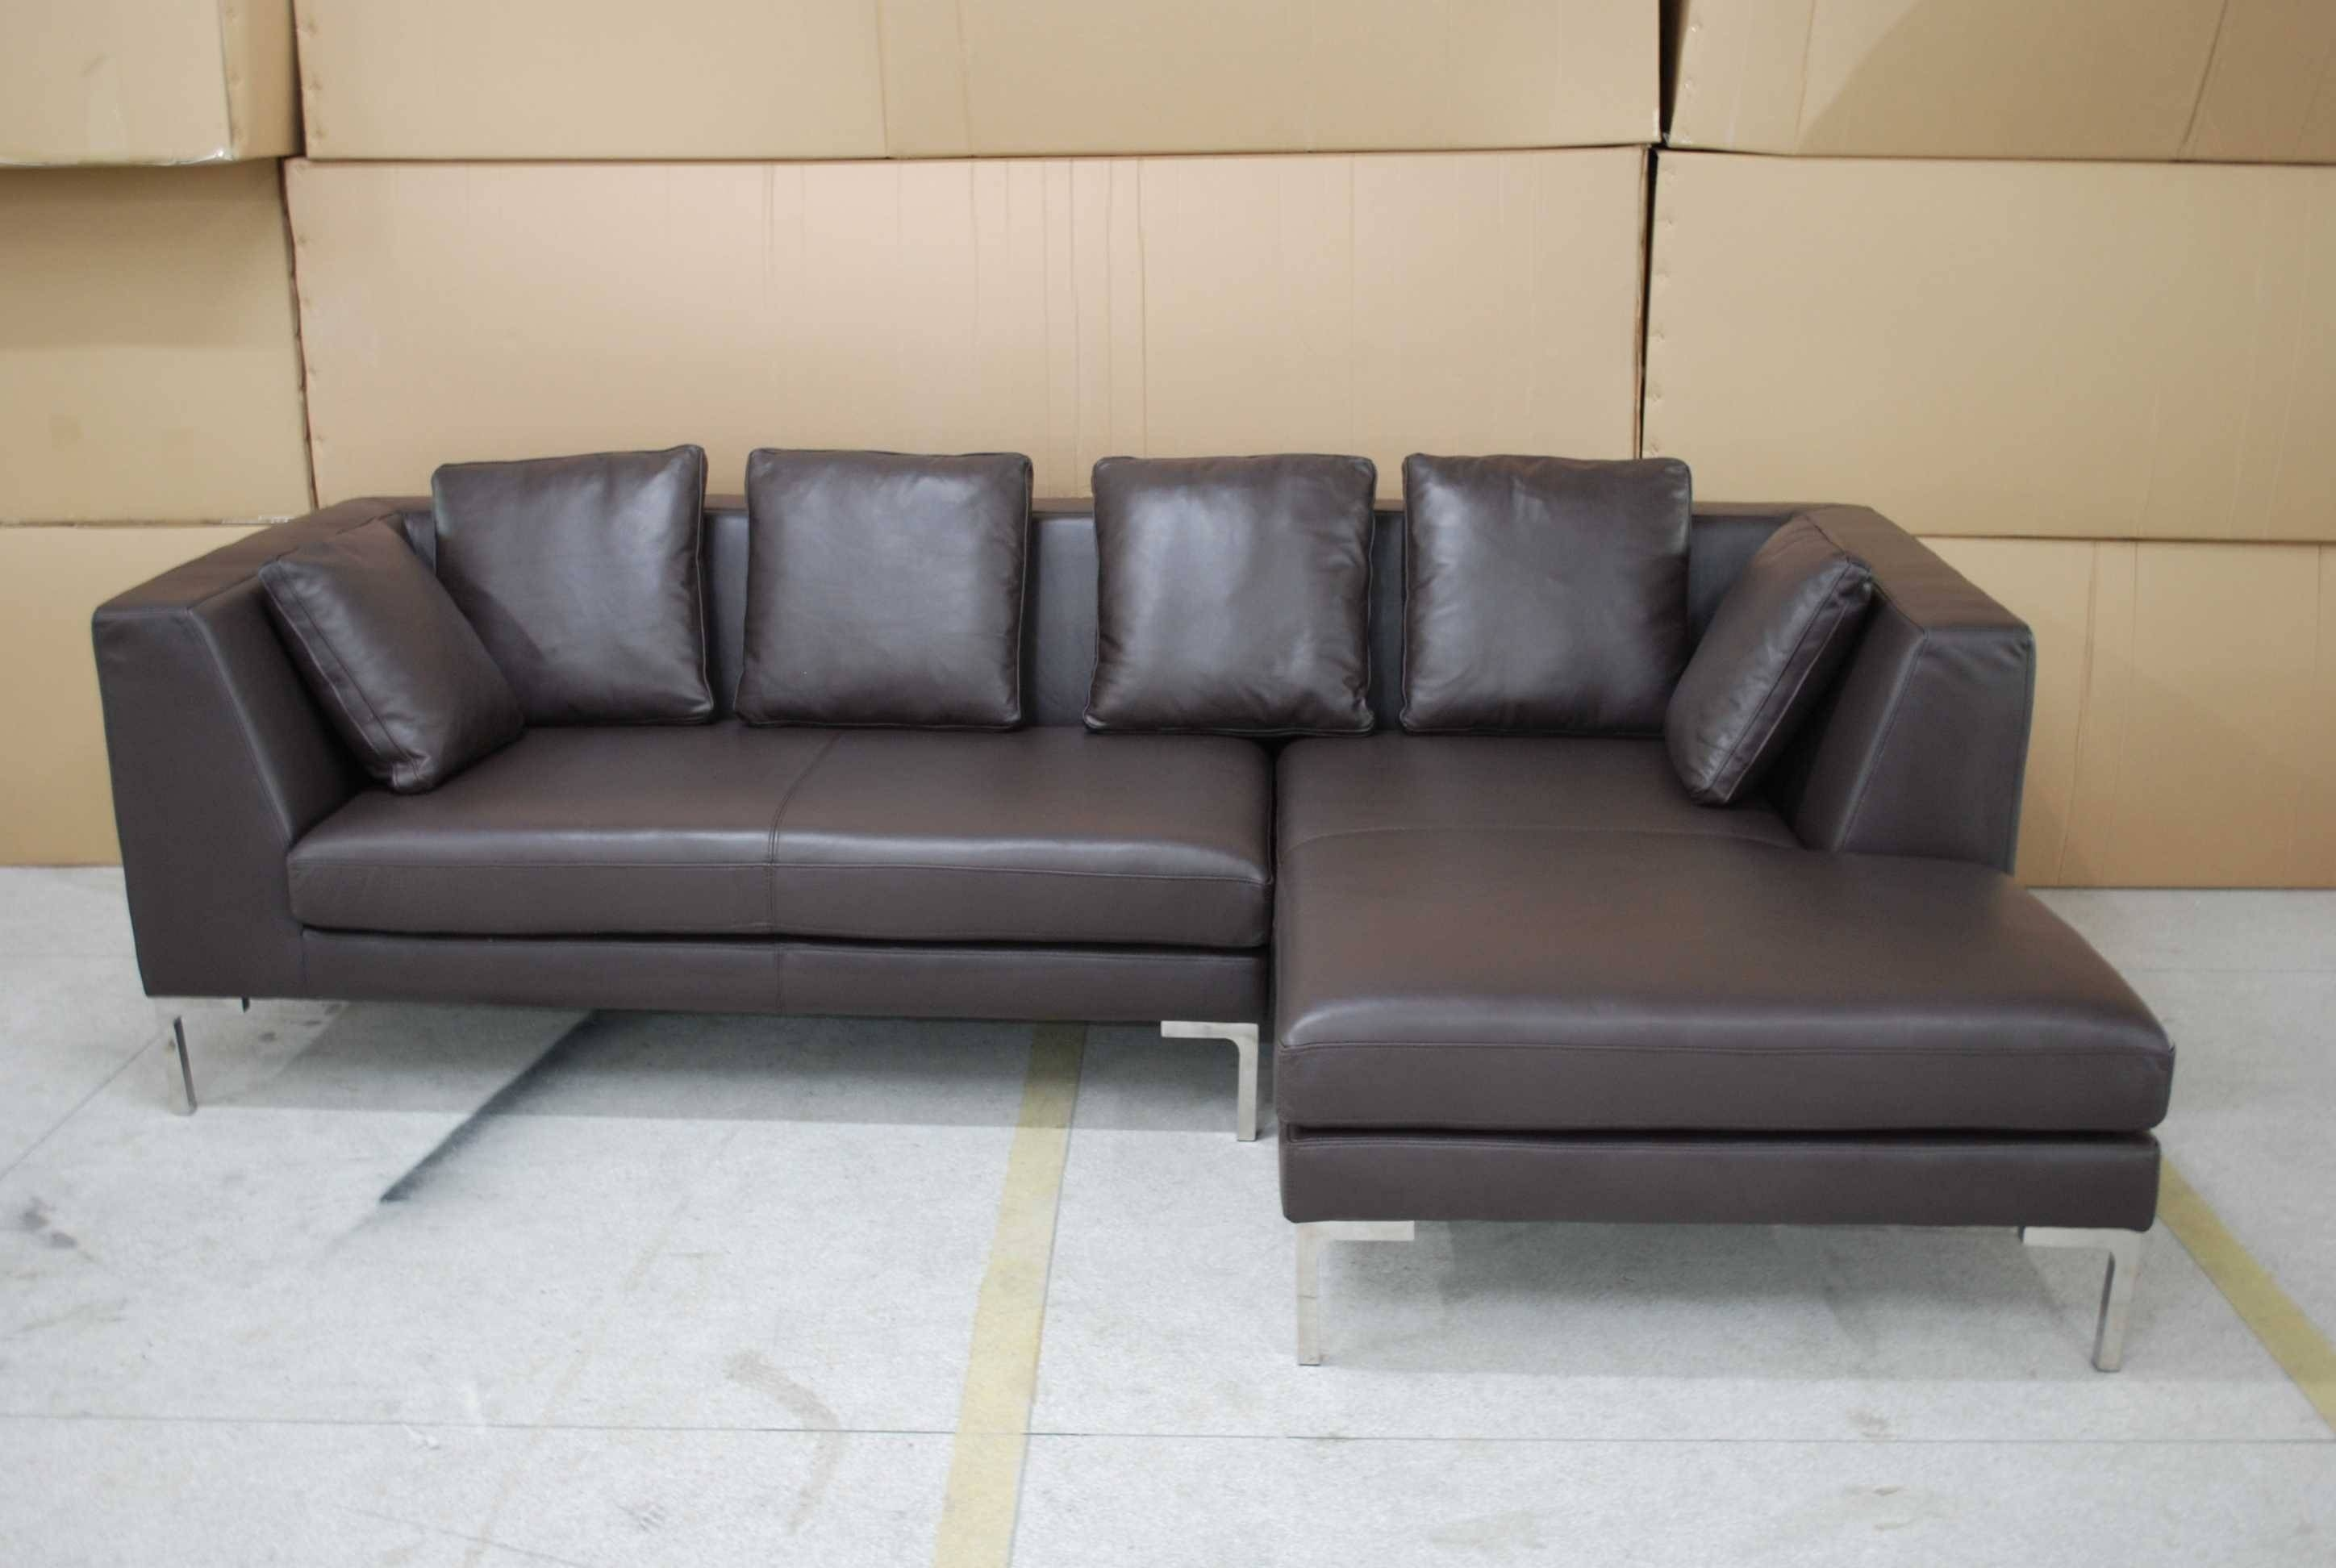 Best Leather Corner Sofas With Leather Corner Sofa Black White within Leather Corner Sofas (Image 4 of 30)